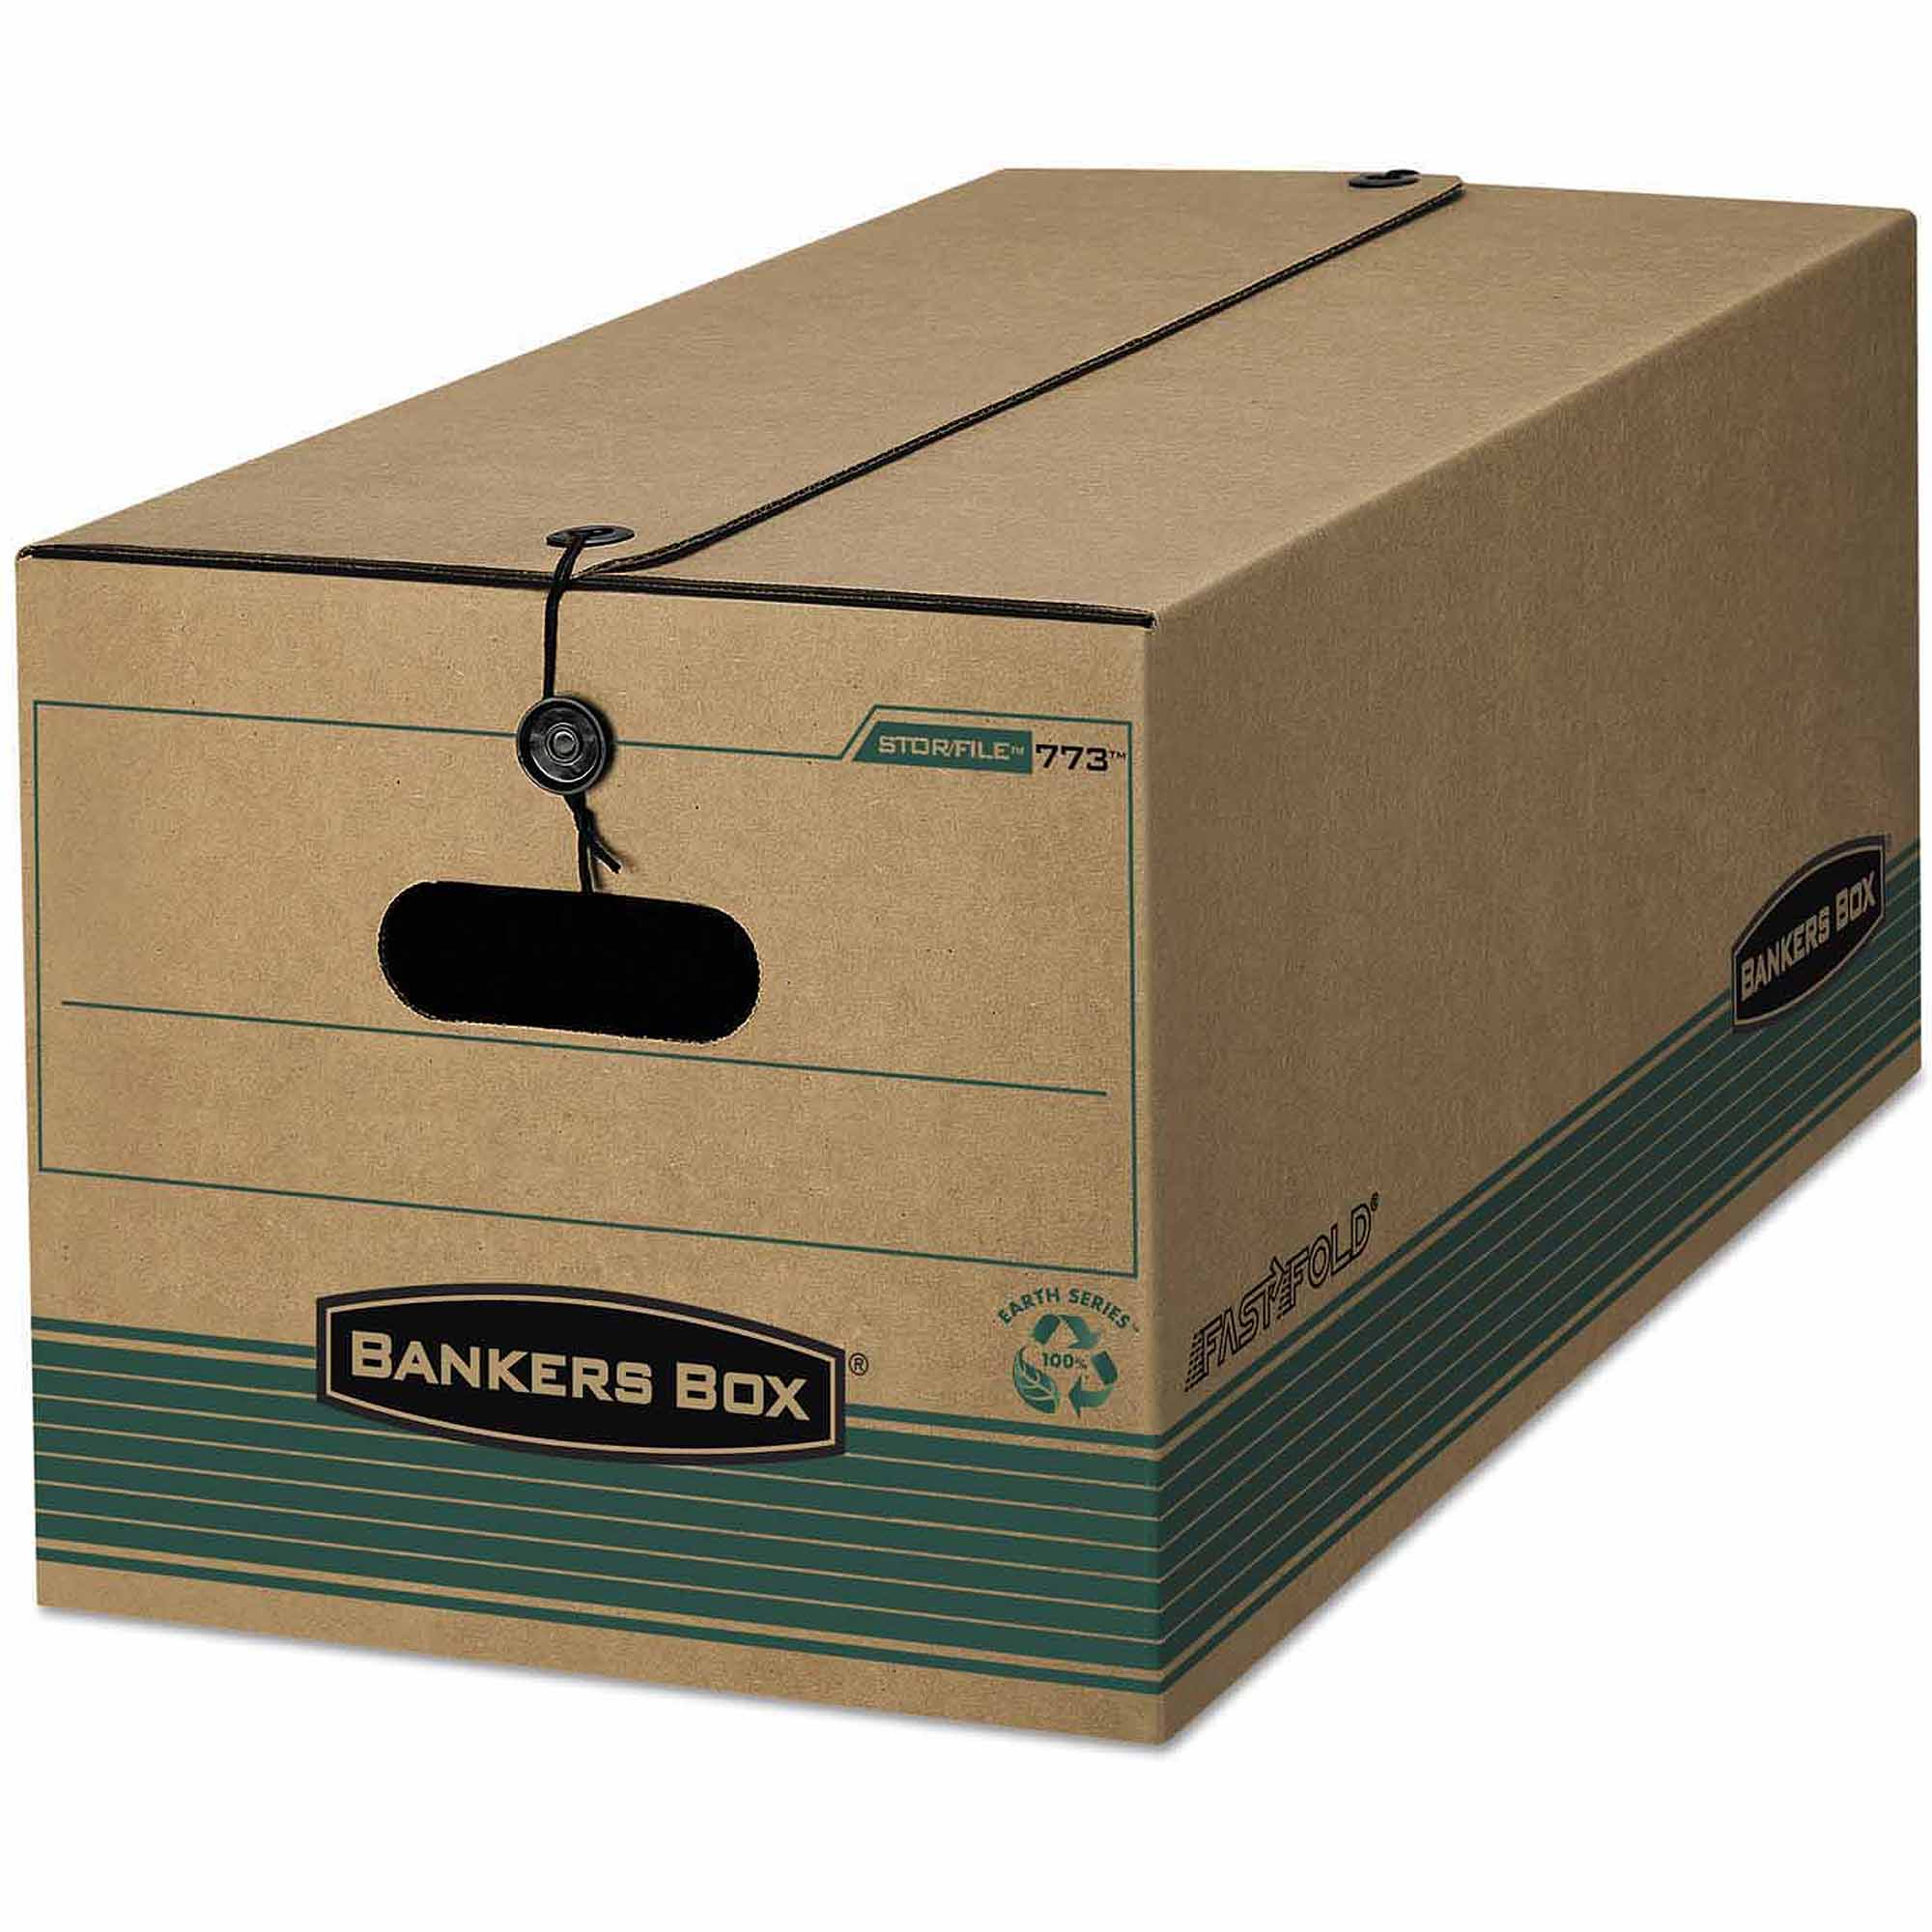 Bankers Box Stor/File Extra Strength Storage Box, Legal, String/Button, Kraft/Green, 12-Count